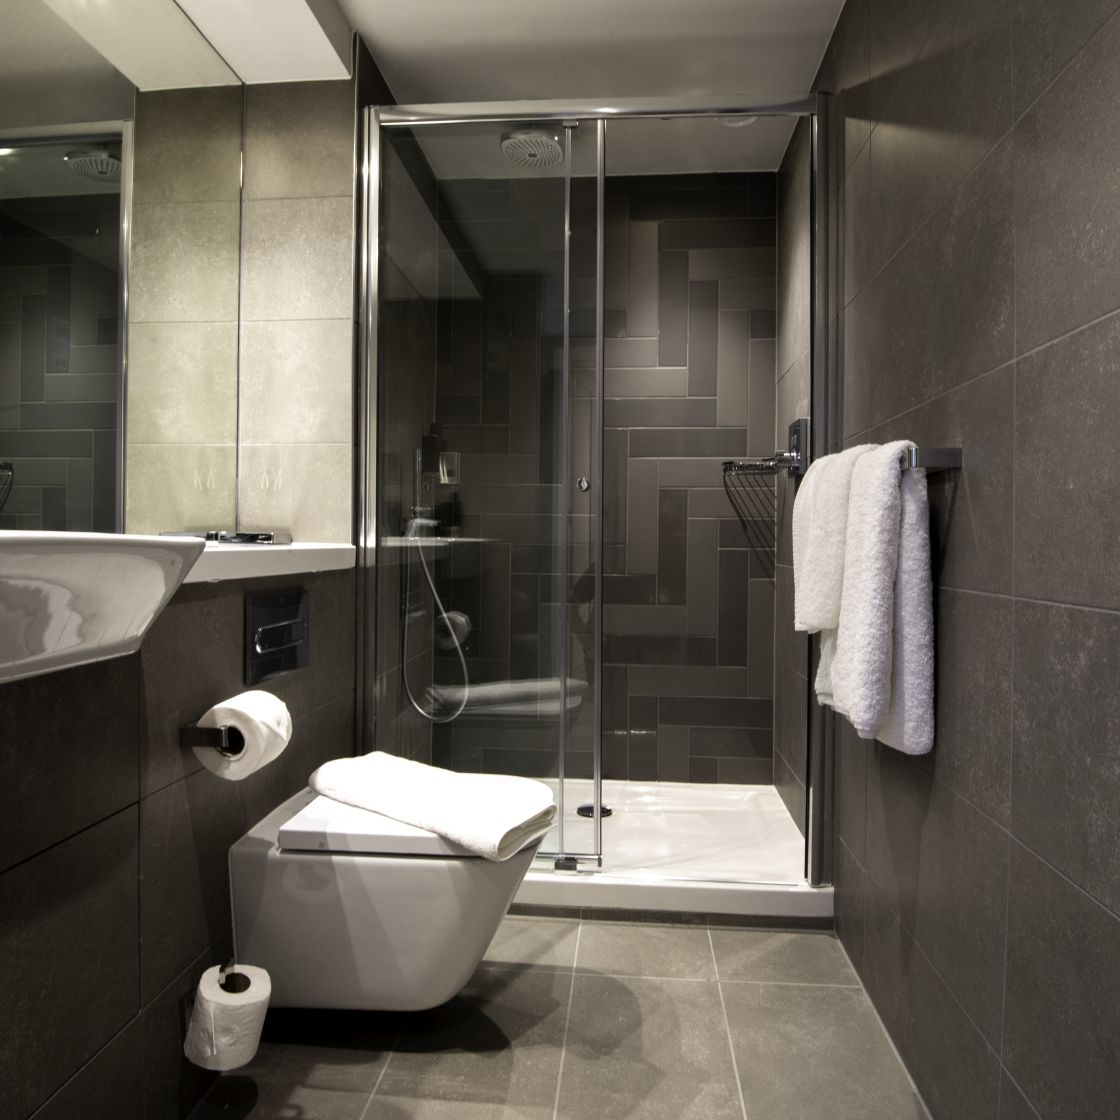 Studio Student Apartment in Newcastle. En-suite with rainfall shower. IconInc @ Roomzzz